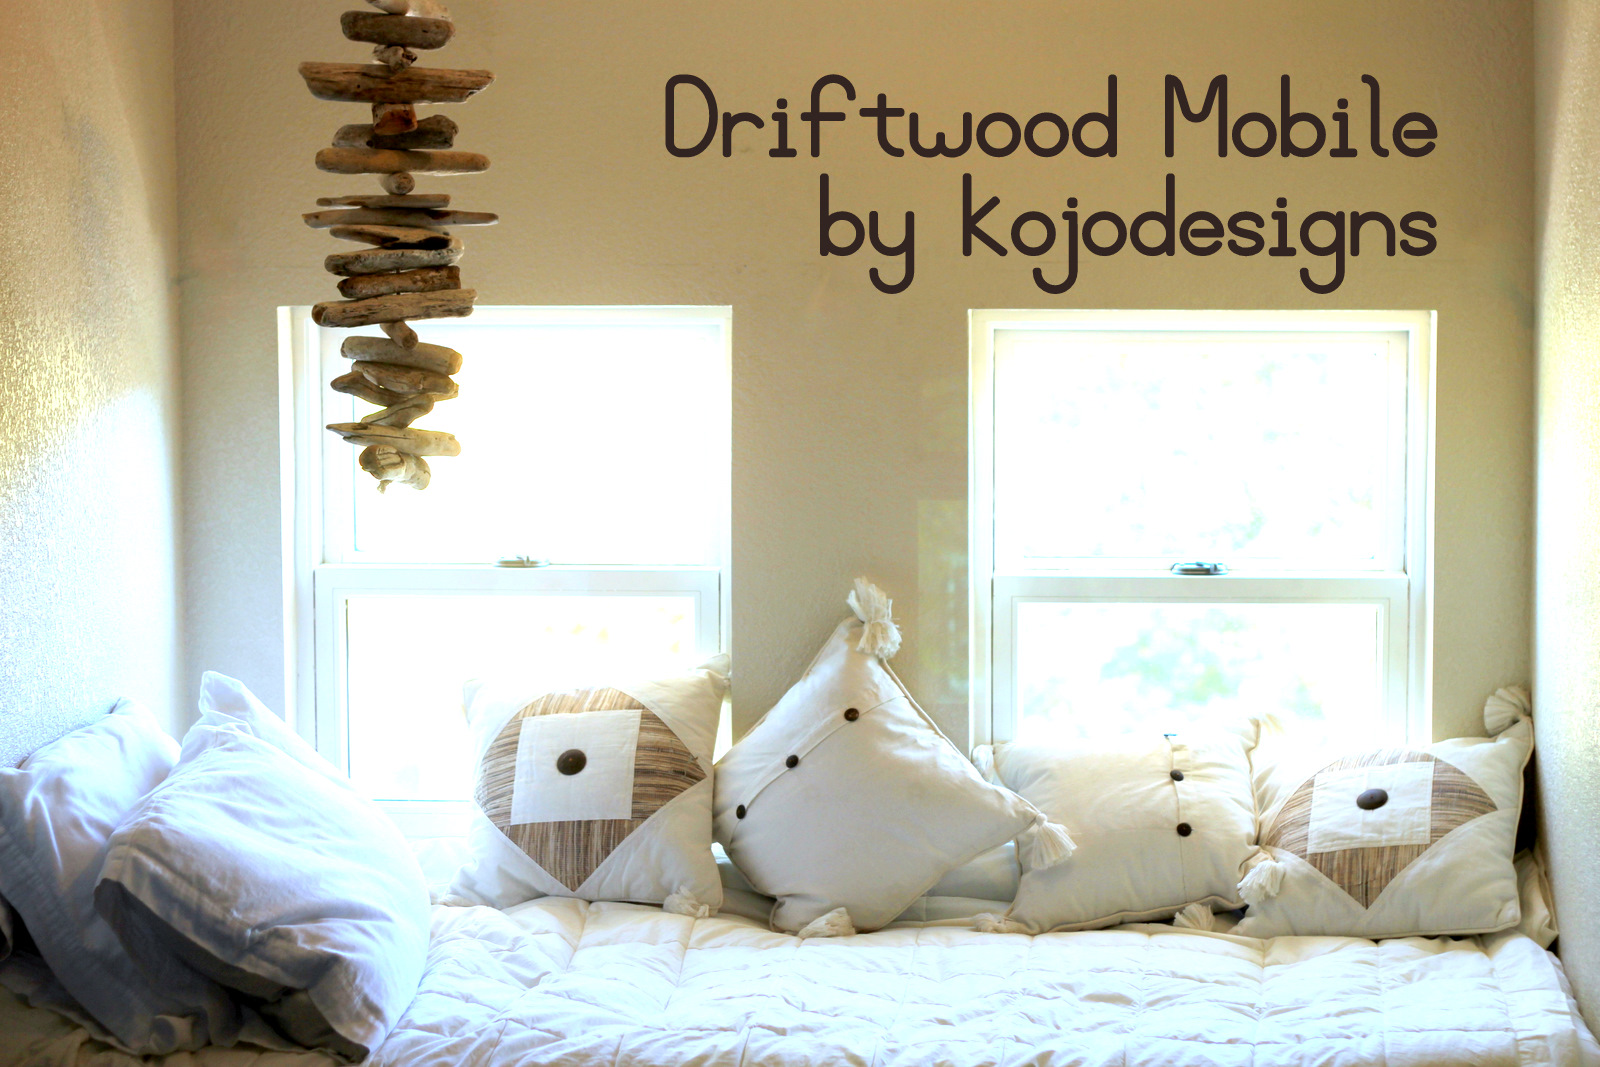 How to make a driftwood mobile for Driftwood crafts to make